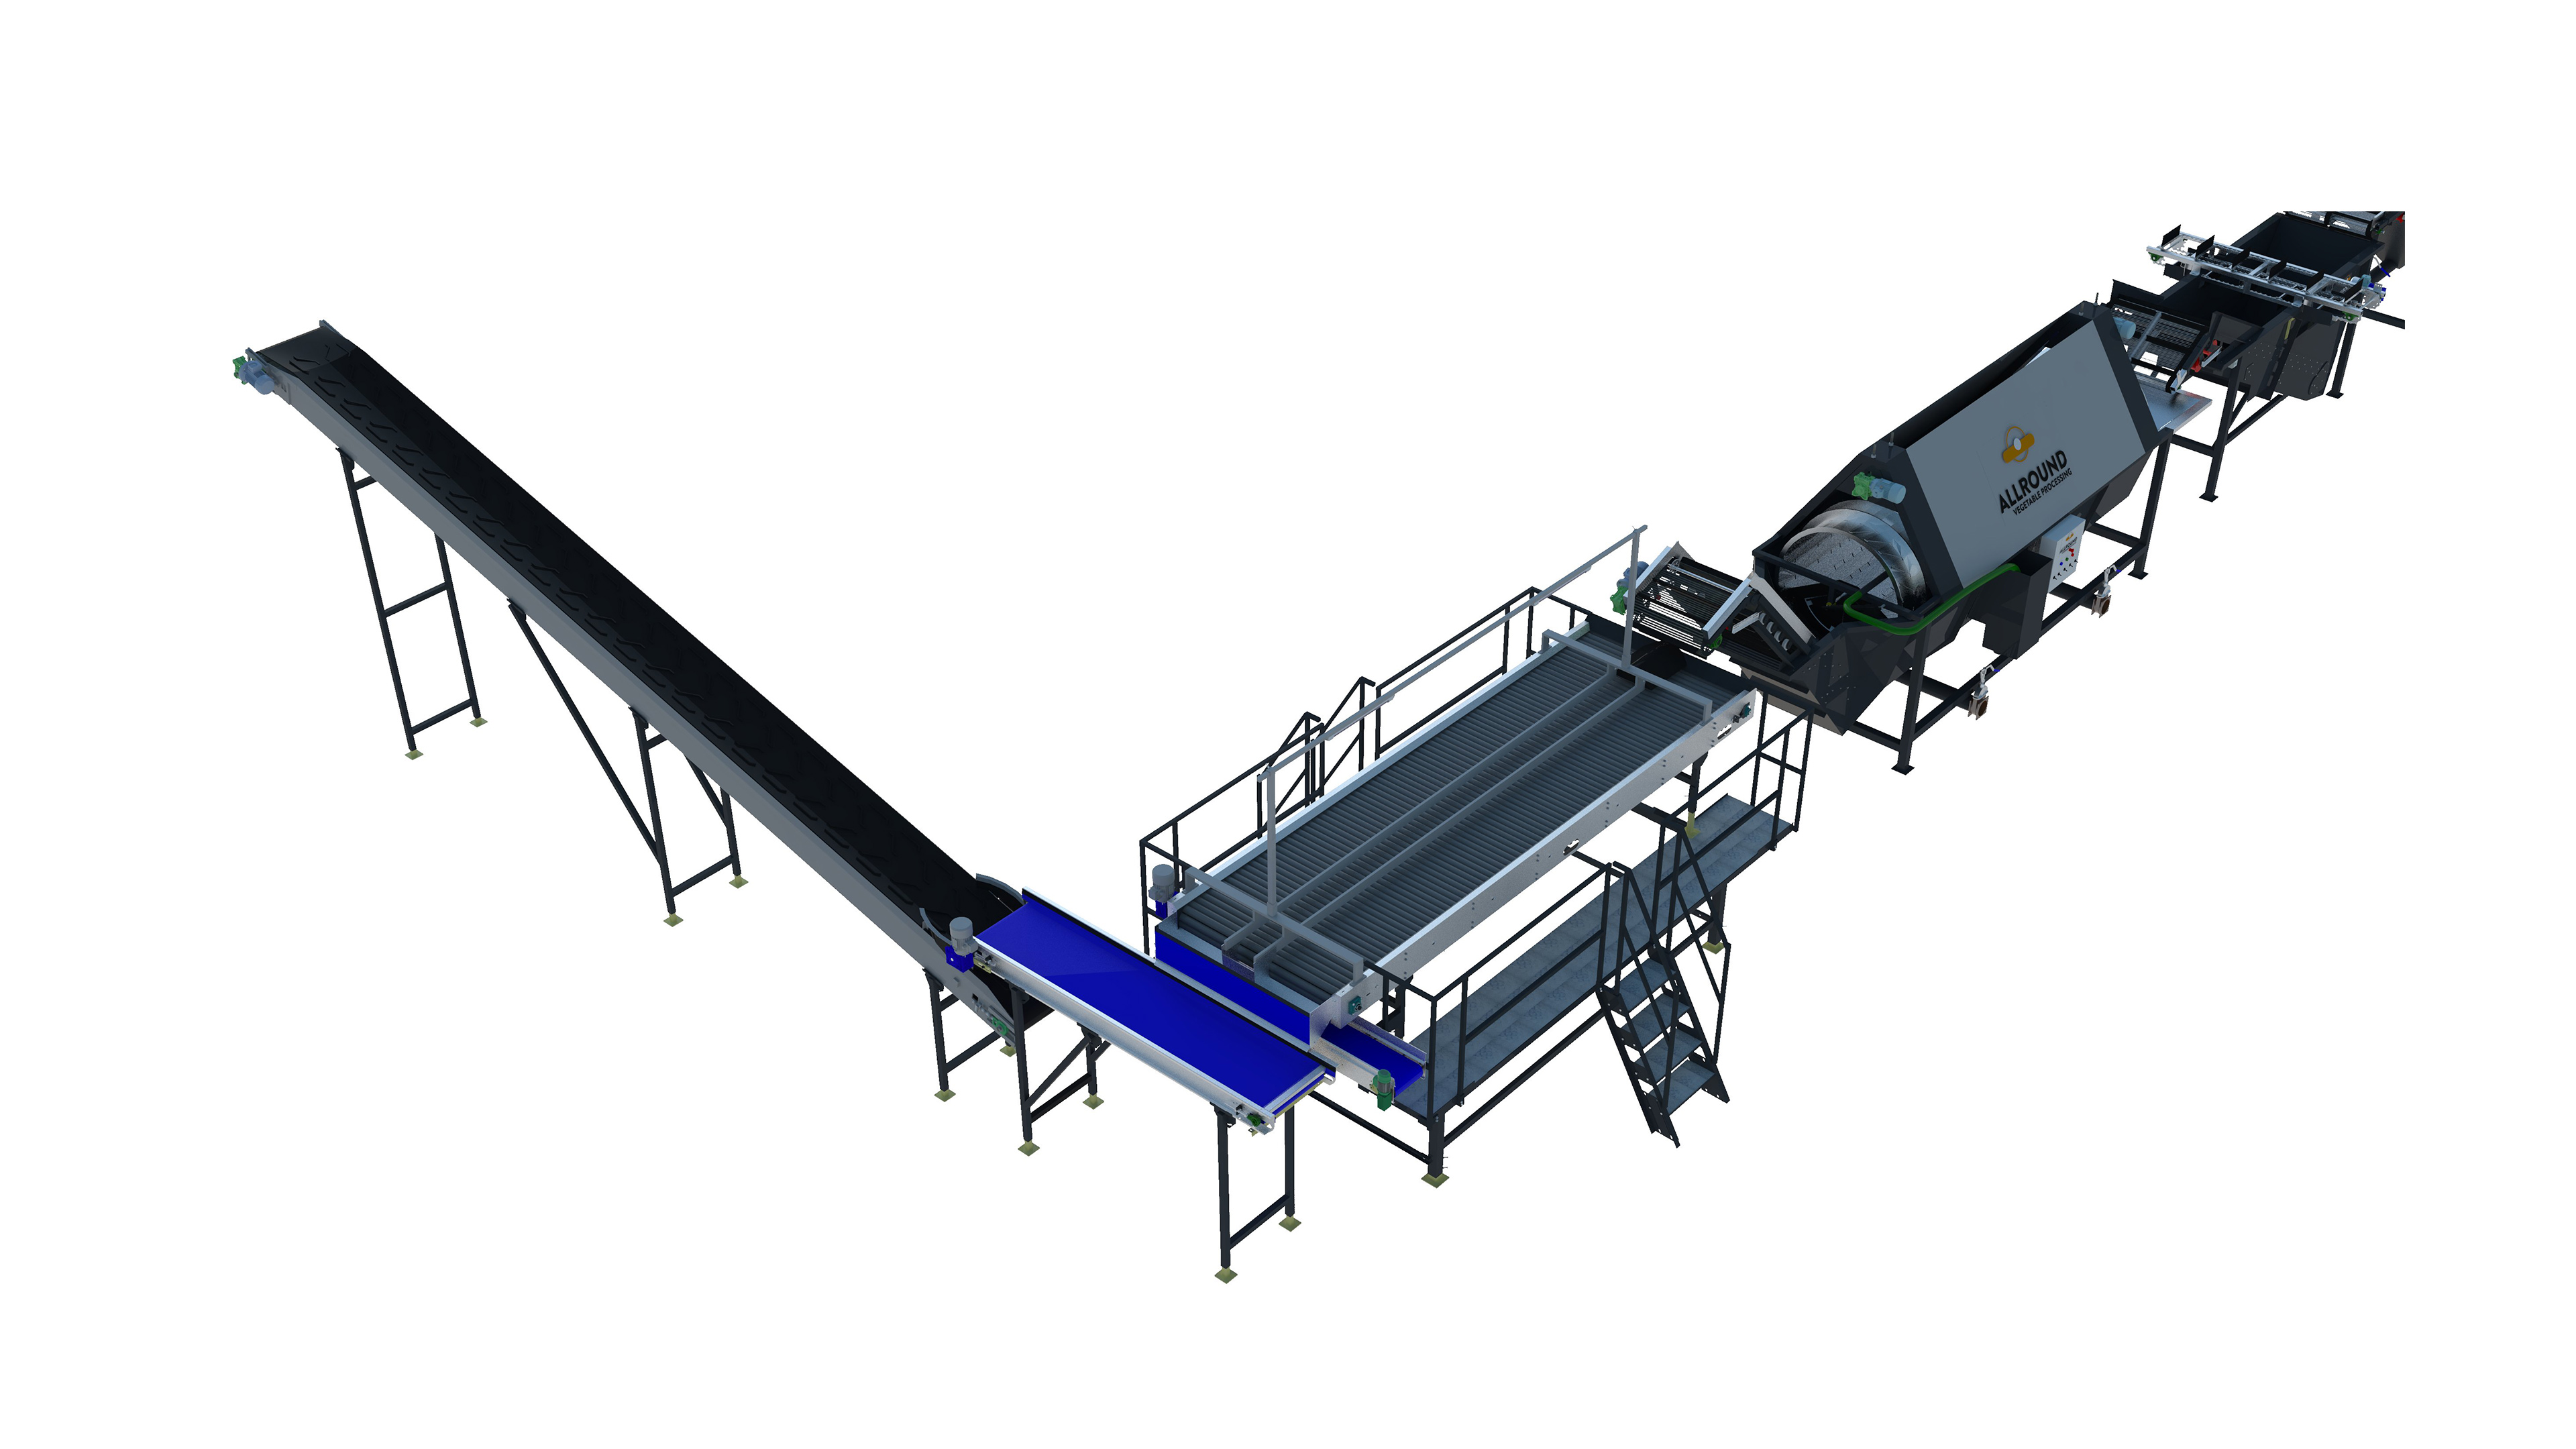 Industrial potato washing line 500 series WEIGHING AND PACKAGING AREA